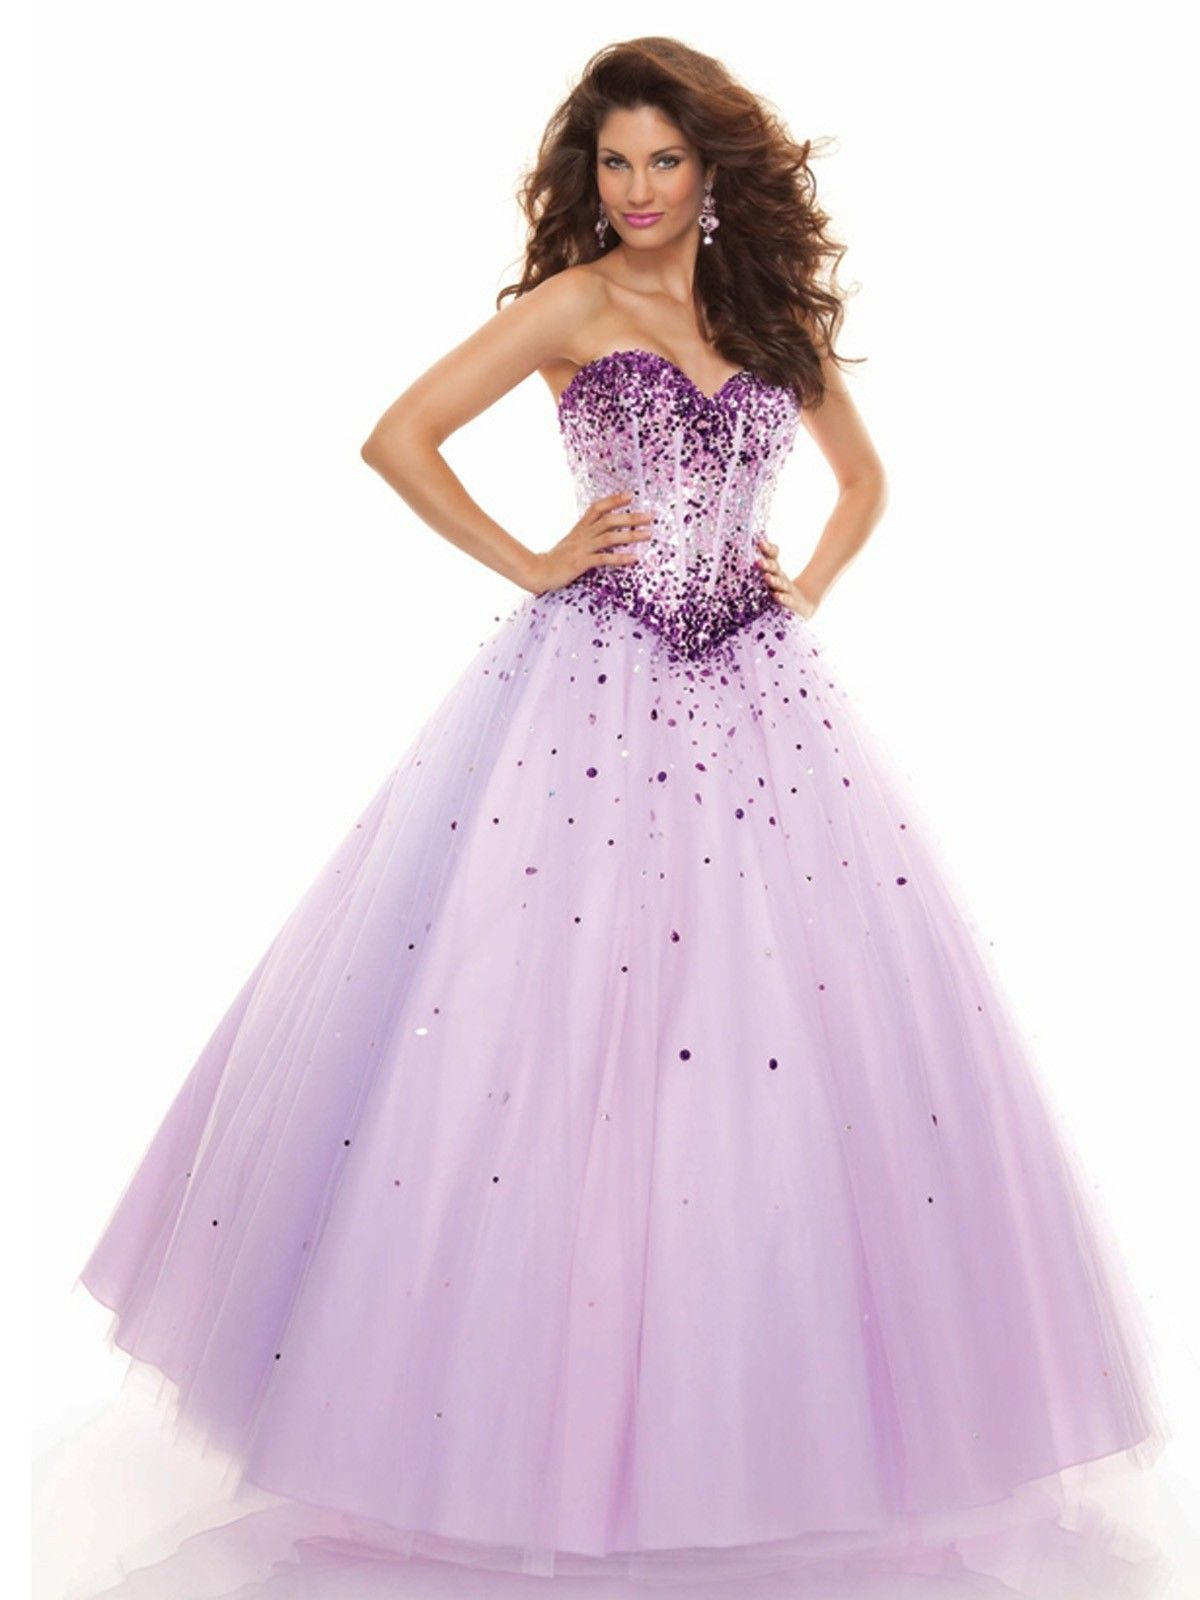 17 Best images about Purple ball gowns on Pinterest | Ball gown ...